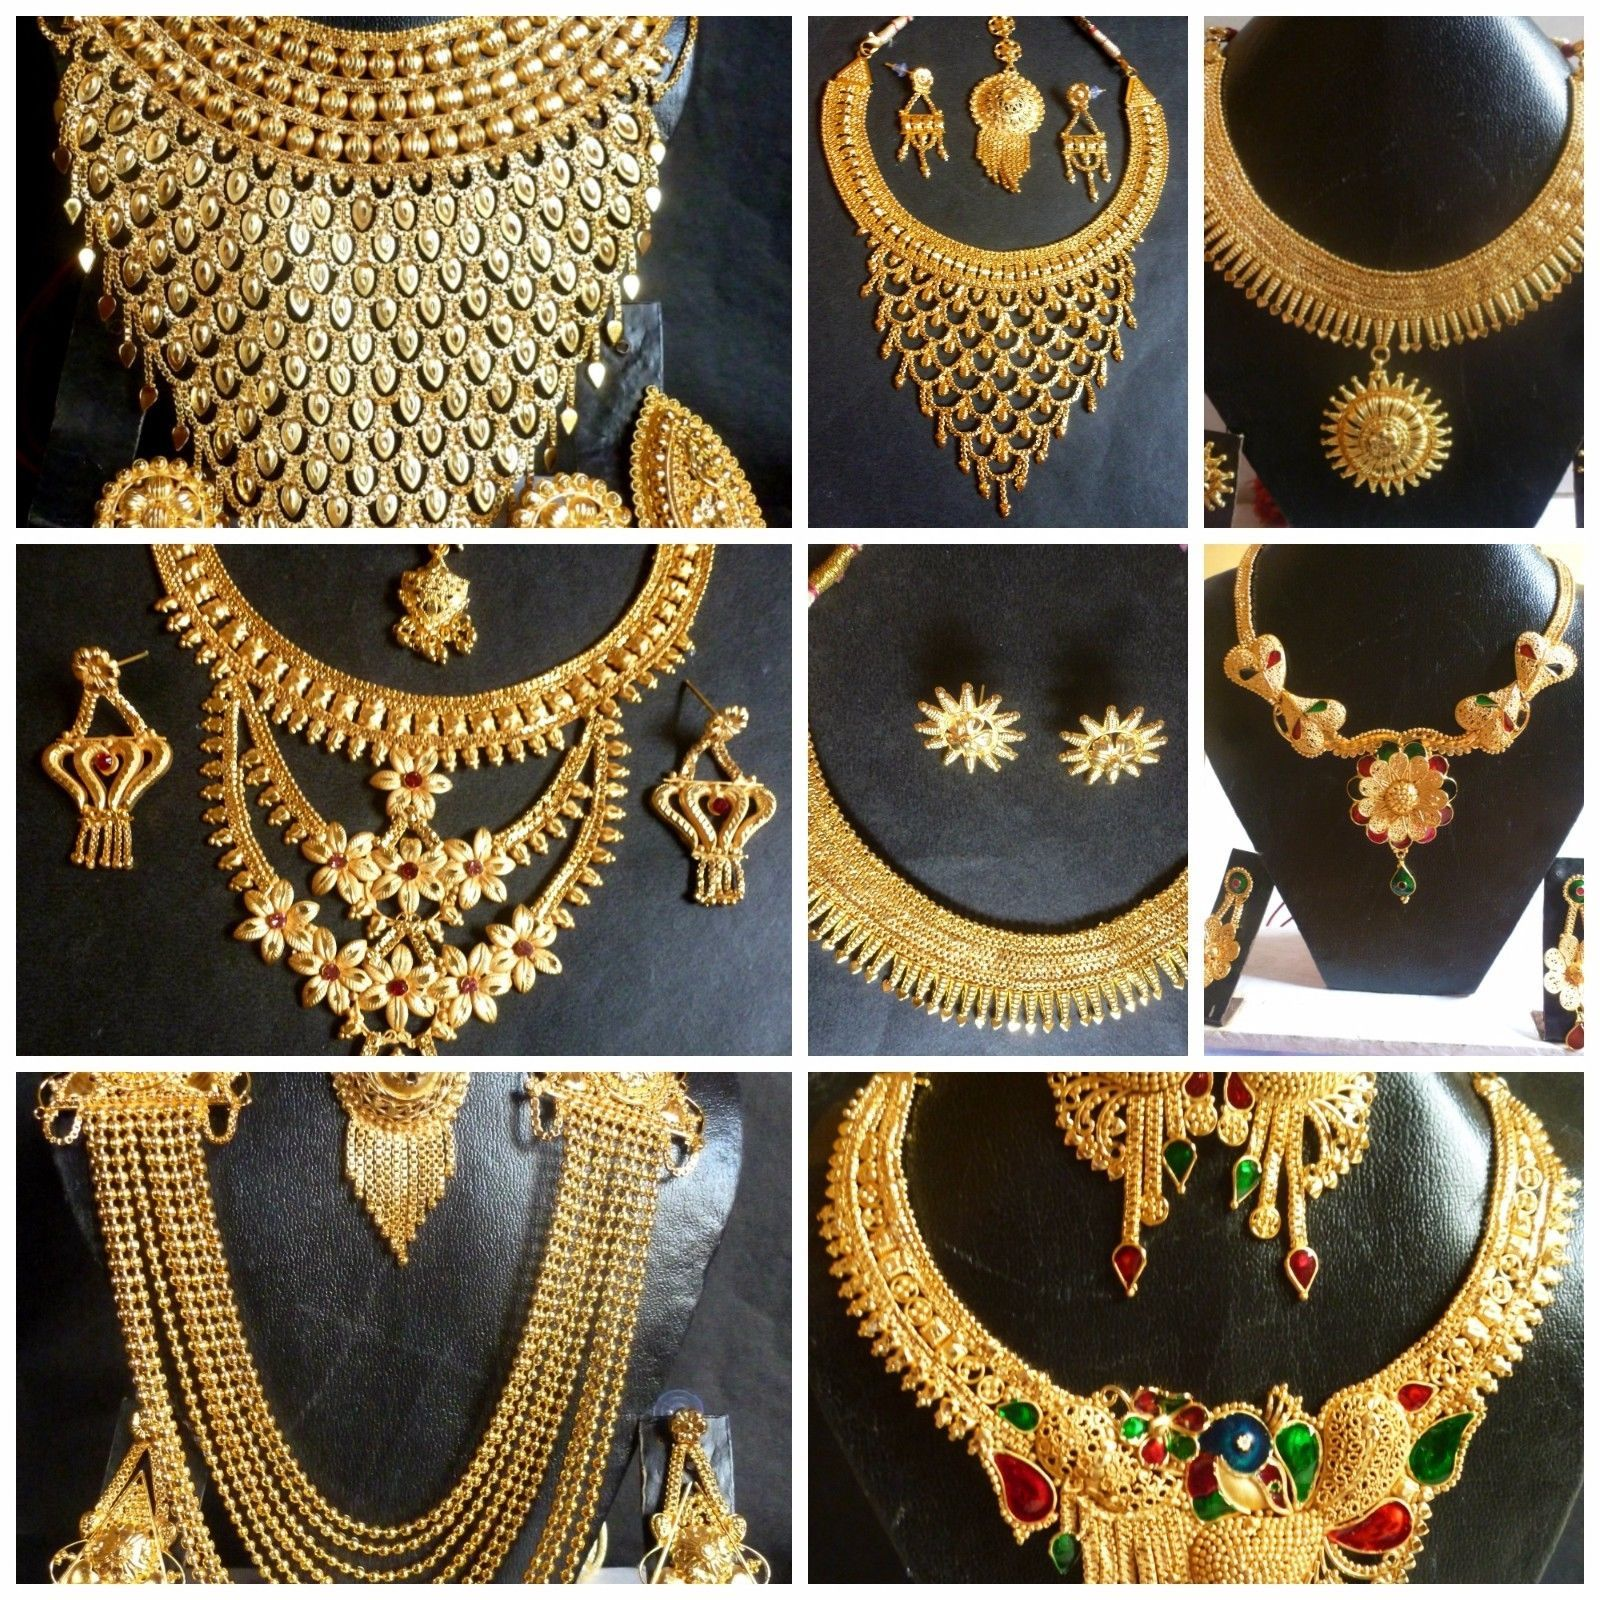 Indian Bridal Necklace Set 22k: Indian 22K Gold Plated Wedding Necklace Earrings Jewelry